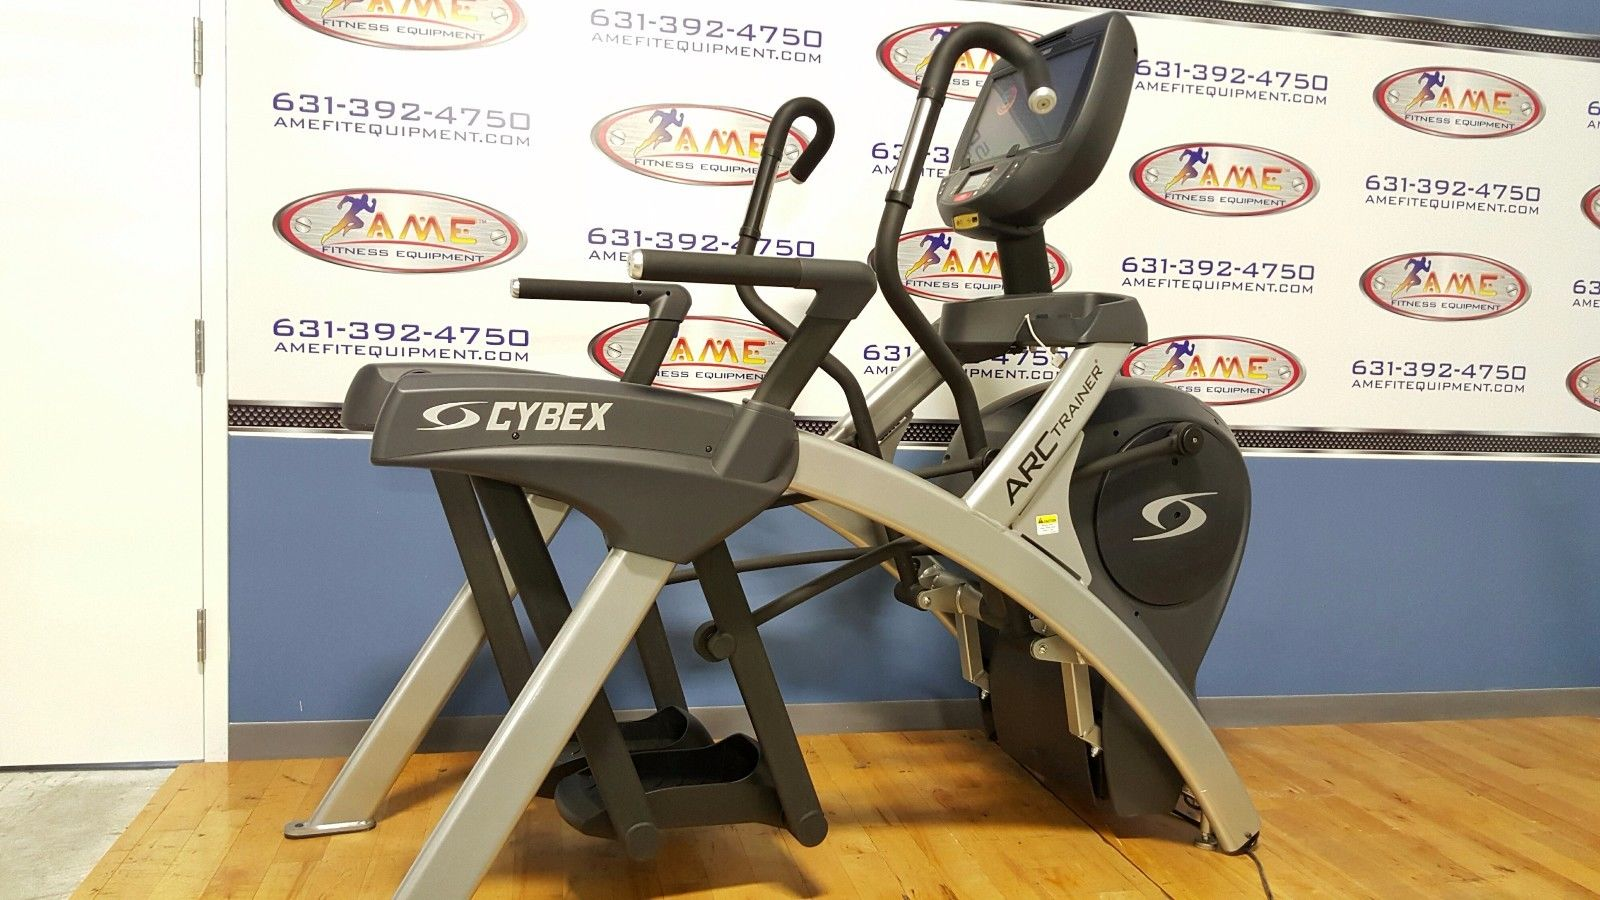 Cybex 771AT E3 Console Total Body Arc Tr...